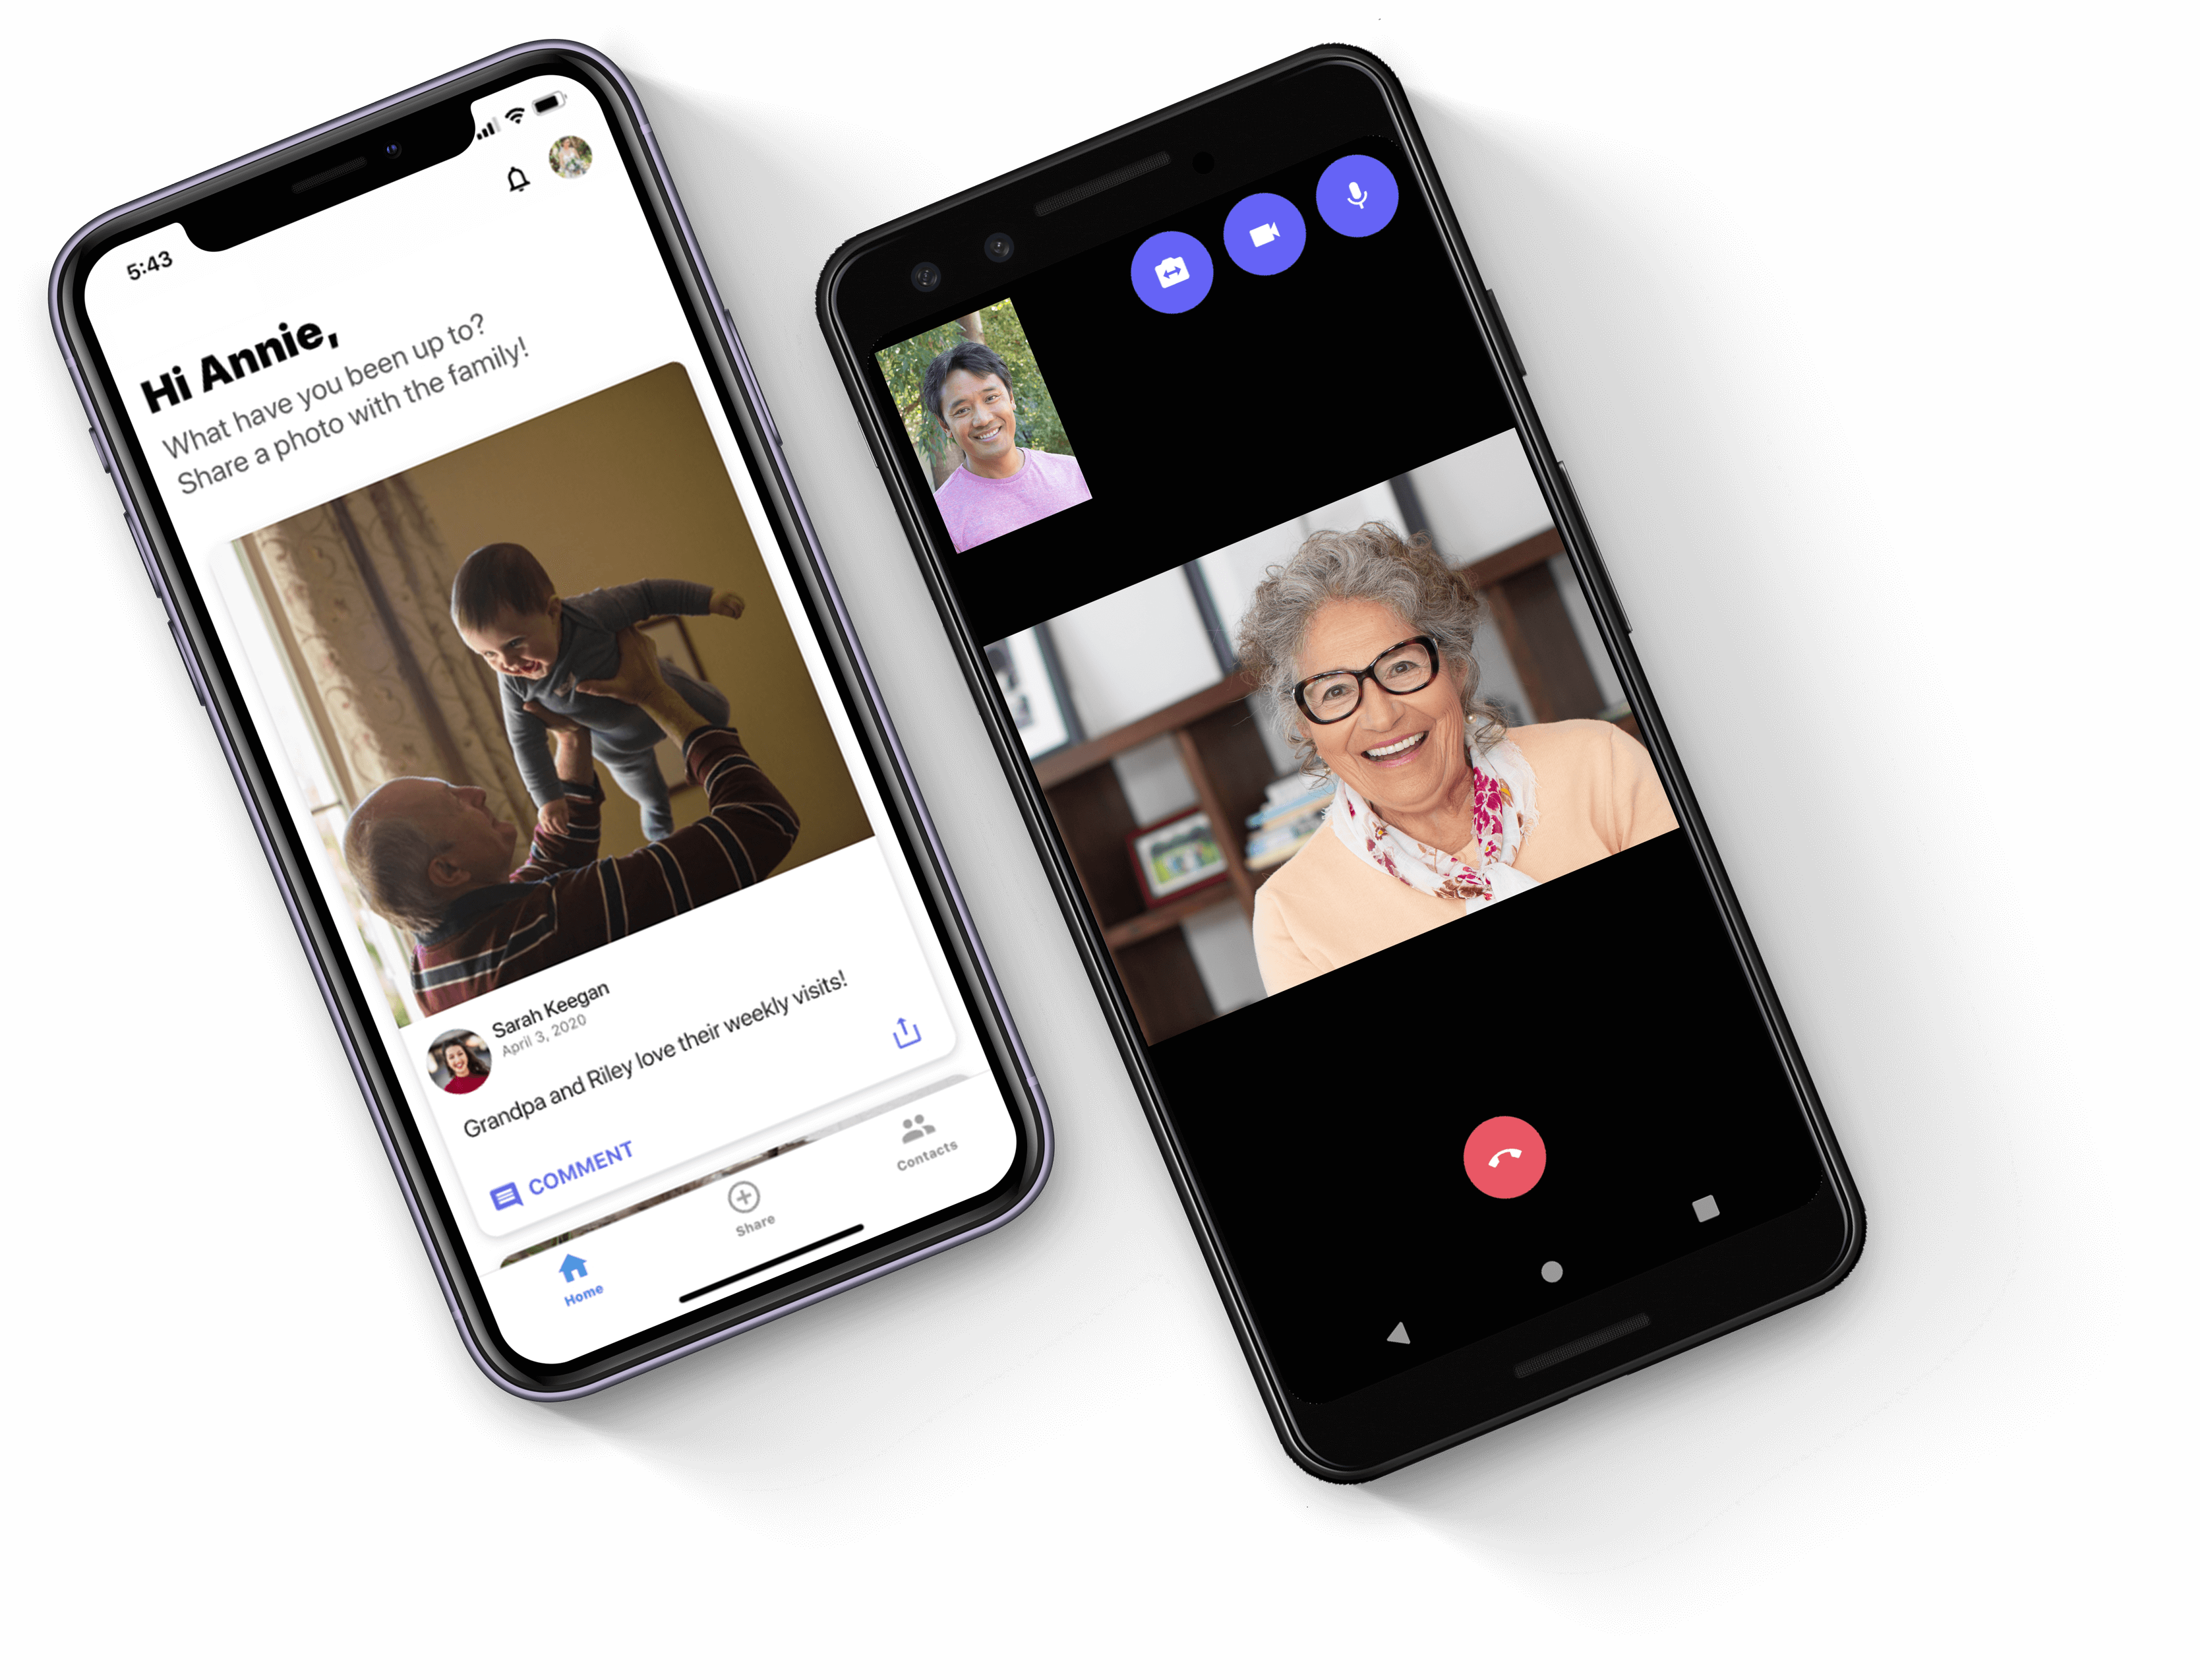 Image of photo share and a video call on a companions smartphone